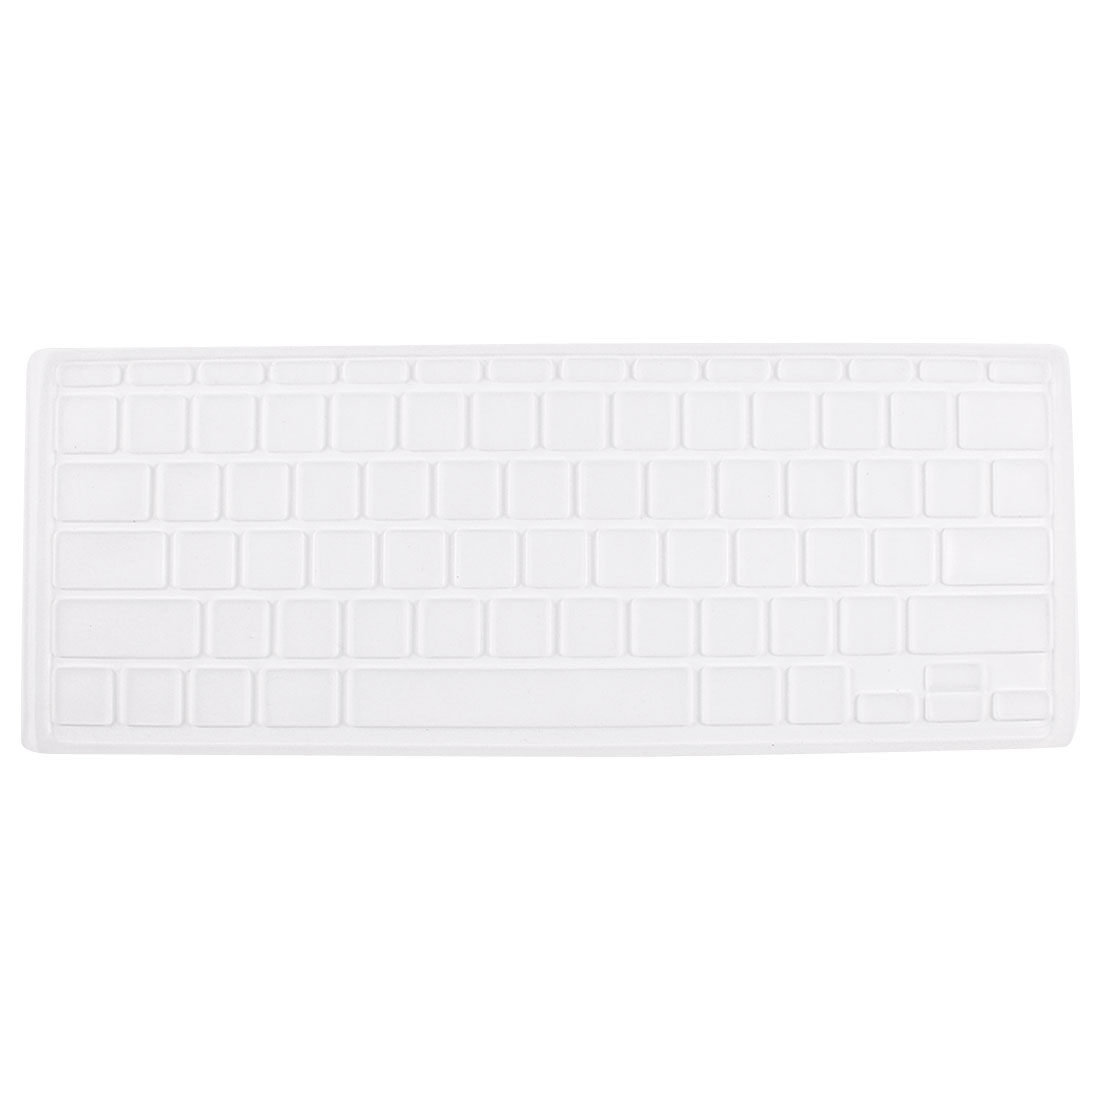 Clear Notebook Keyboard Skin Film Cover Shield for Apple MacBook Air 11.6""